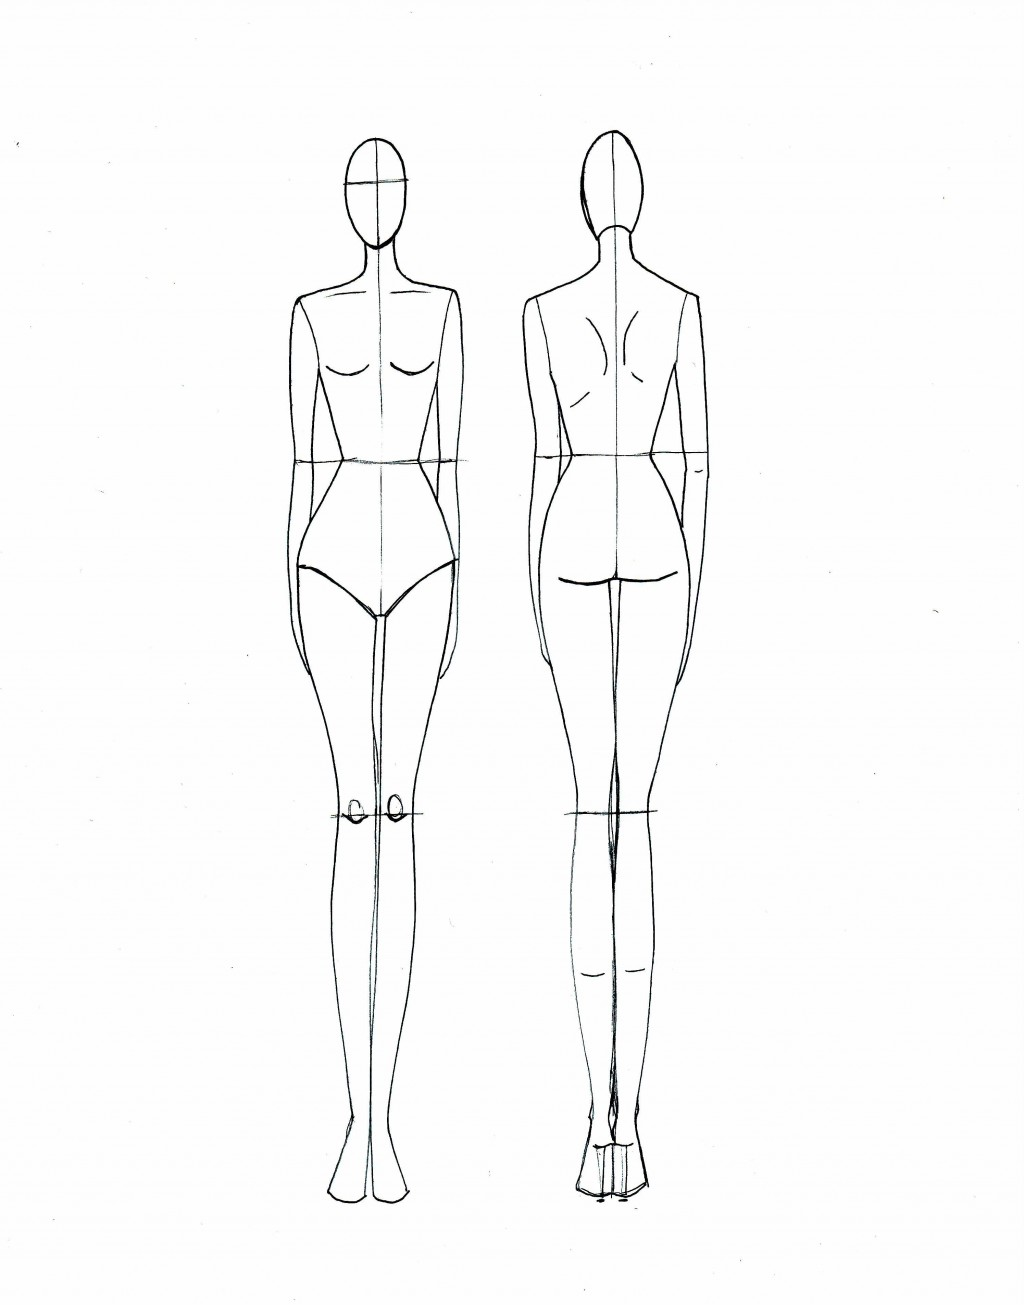 005 Frightening Body Template For Fashion Design Inspiration  Female Male HumanLarge